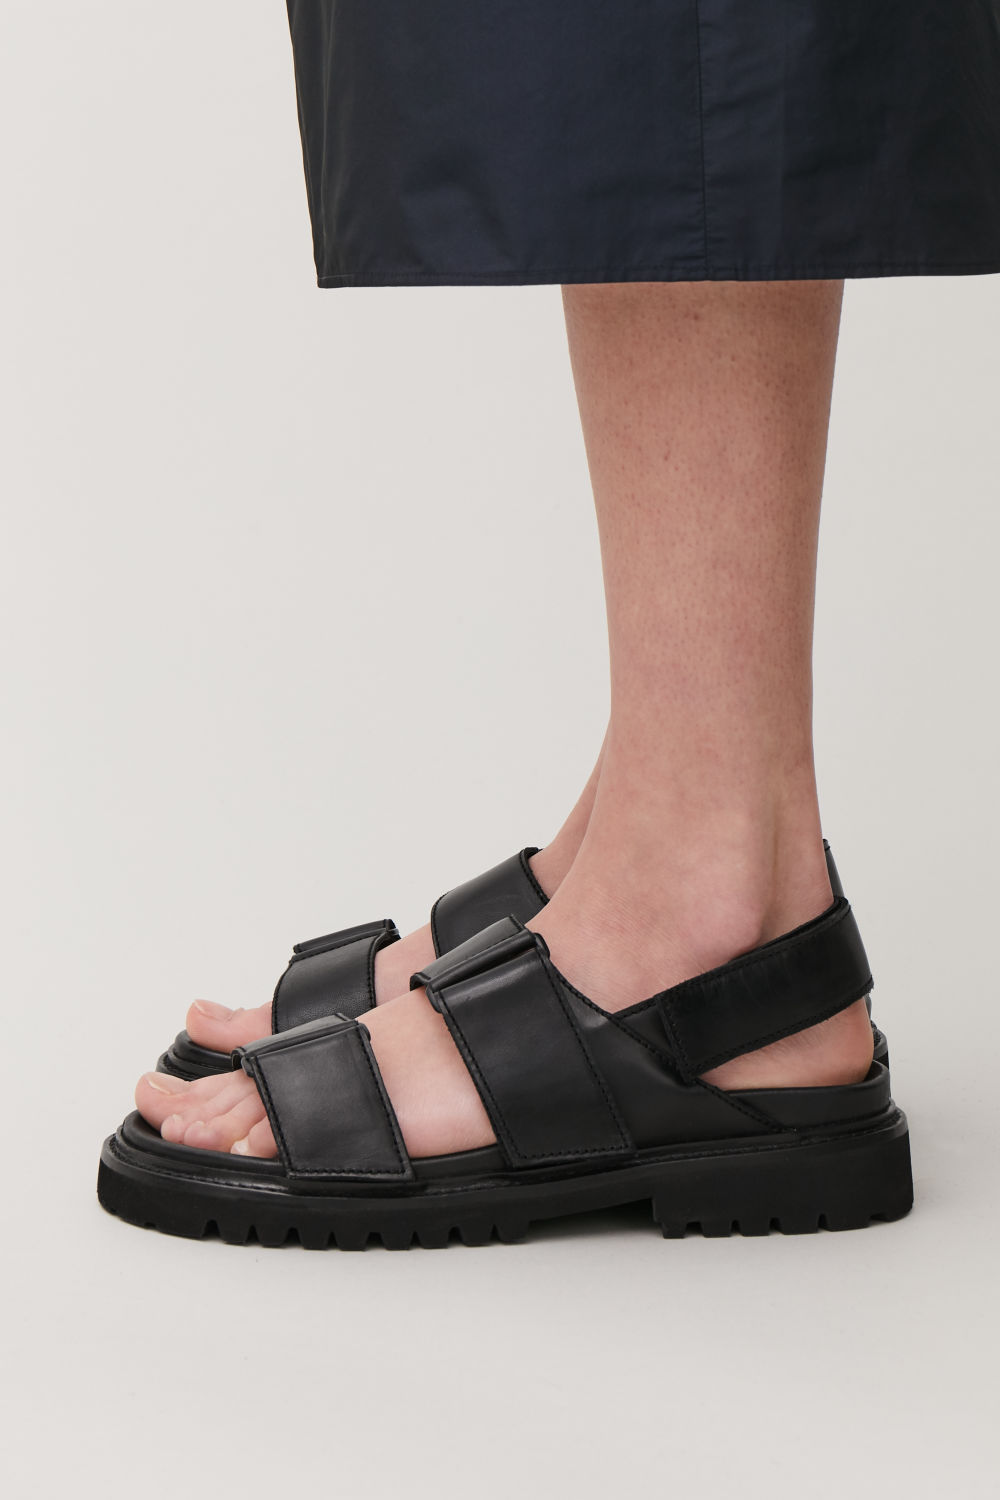 c373237d7c2b CHUNKY LEATHER SANDALS CHUNKY LEATHER SANDALS